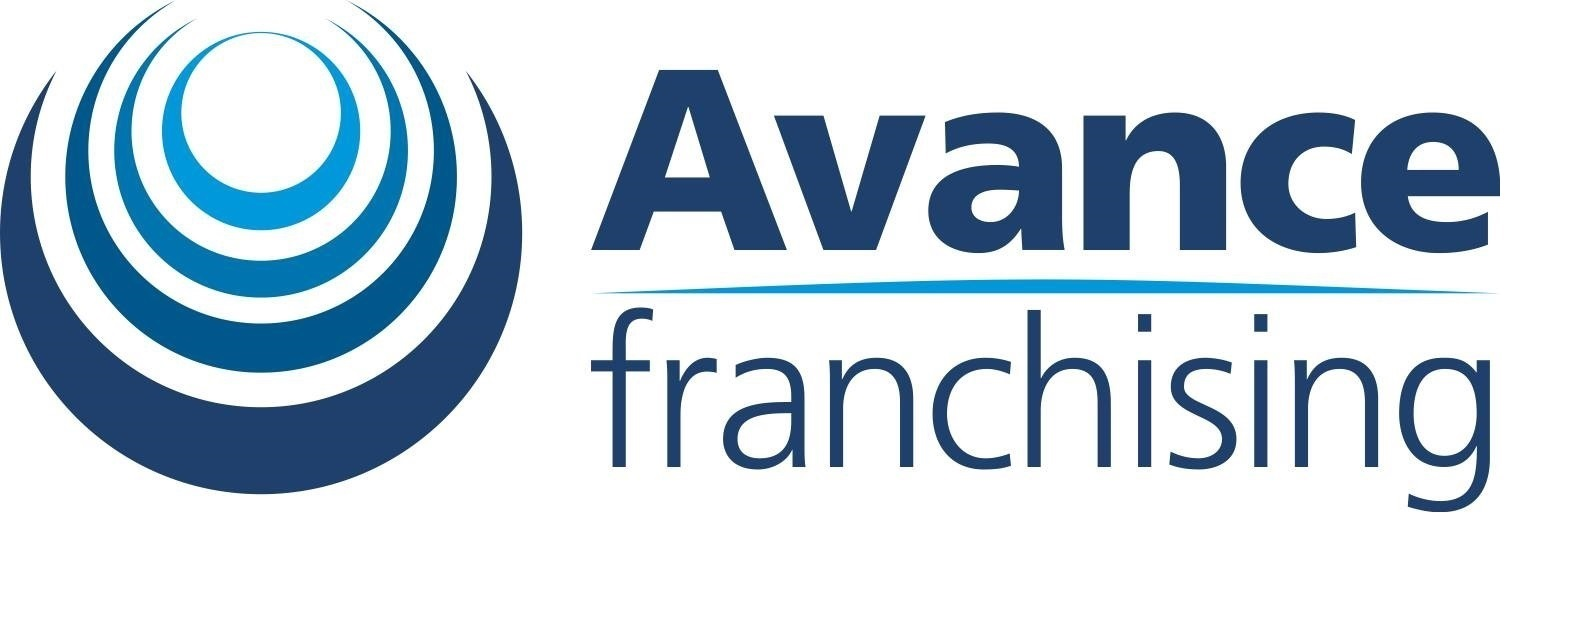 AvanceFranchising-consultoria-evolutto